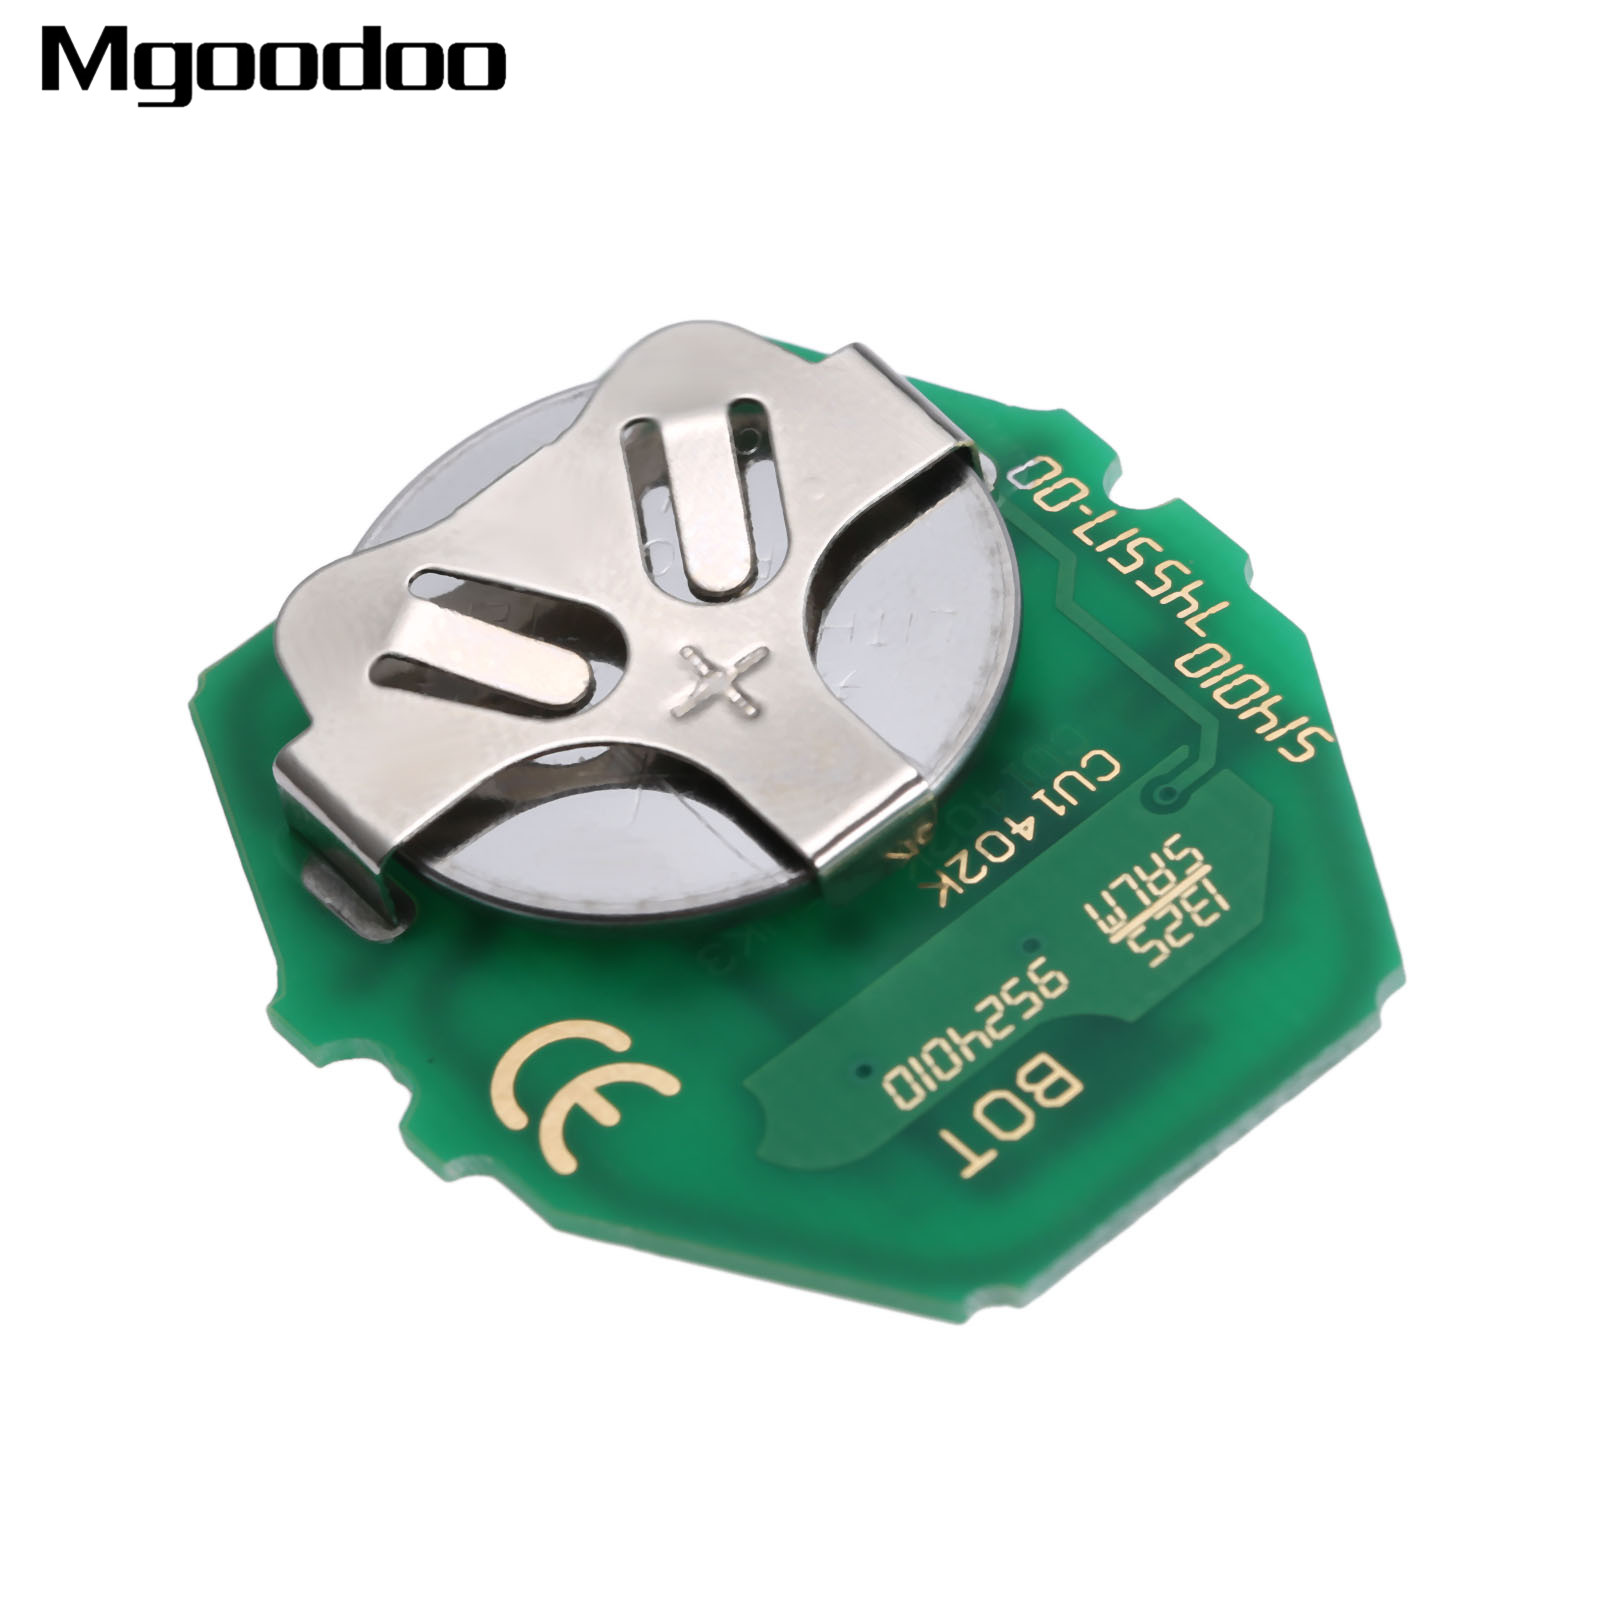 3 Buttons Remote Car Key Shell For BMW E38 E39 E46 X3 X5 EWS System 433Mhz W/ Chip Uncut Blade Replacement Keyless Entry Key Fob